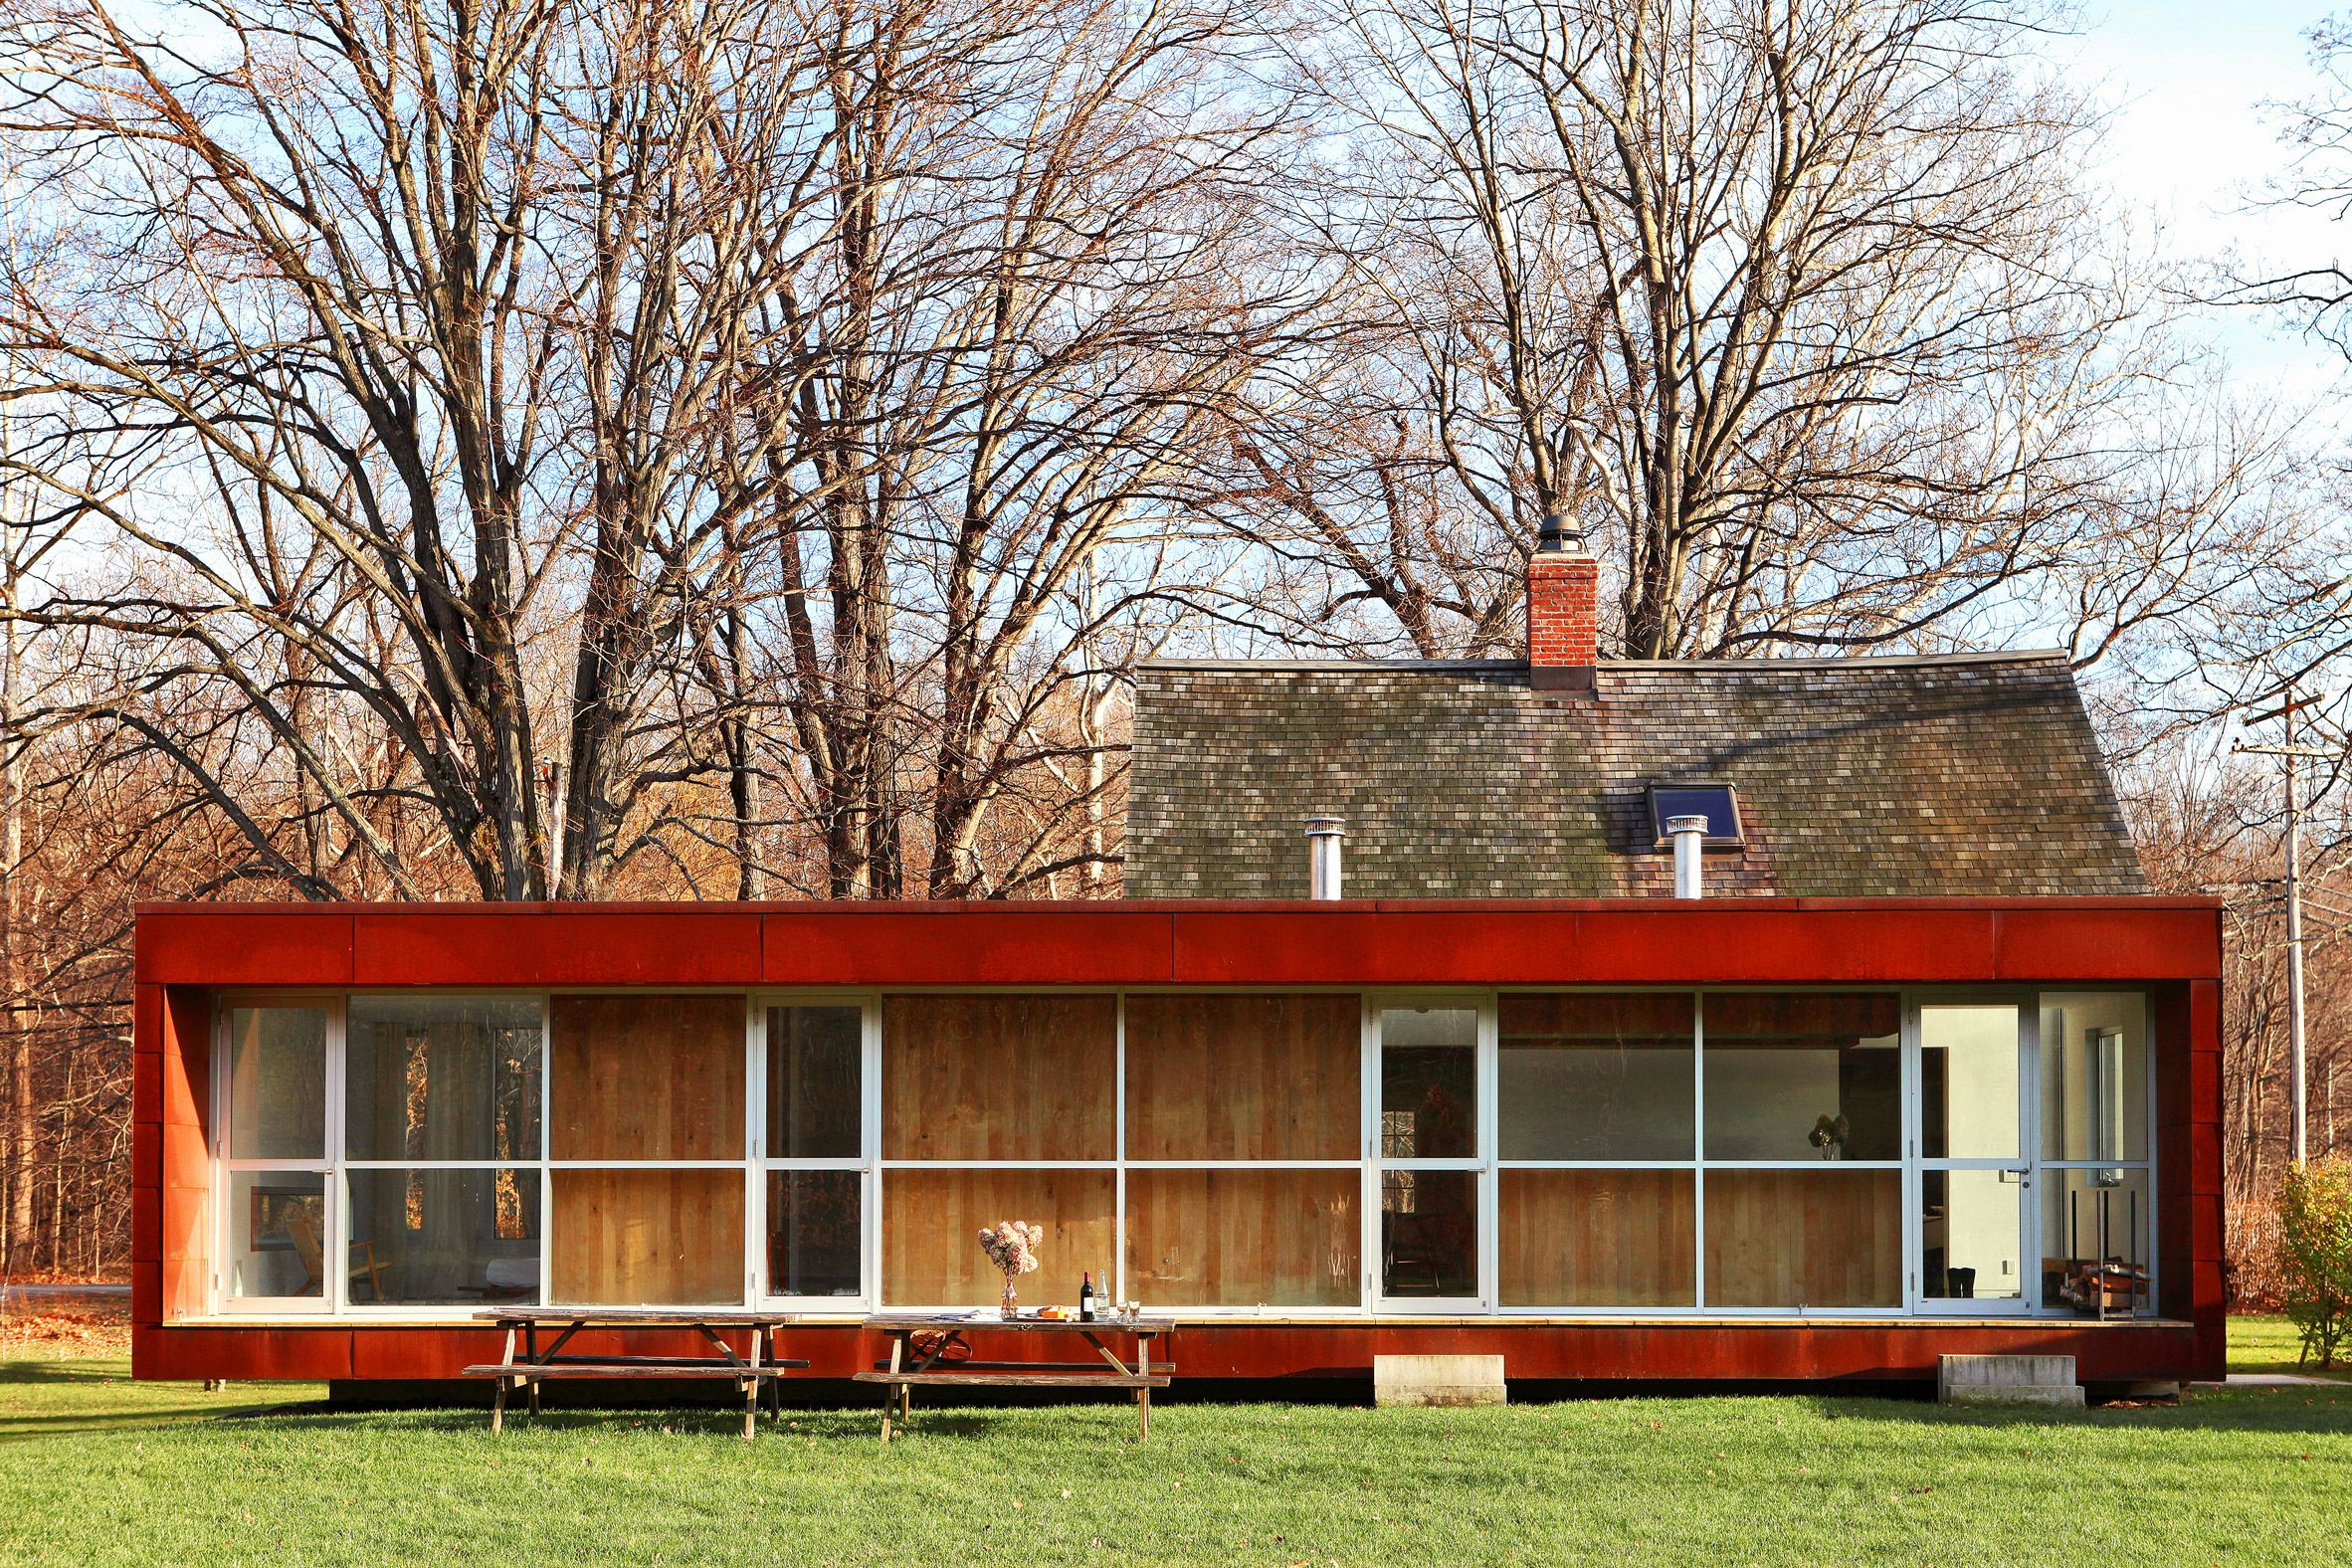 Messana O Rorke Architects Extends Colonial New York Homestead With Weathering Steel Annex Architect Weathering Steel Farmhouse